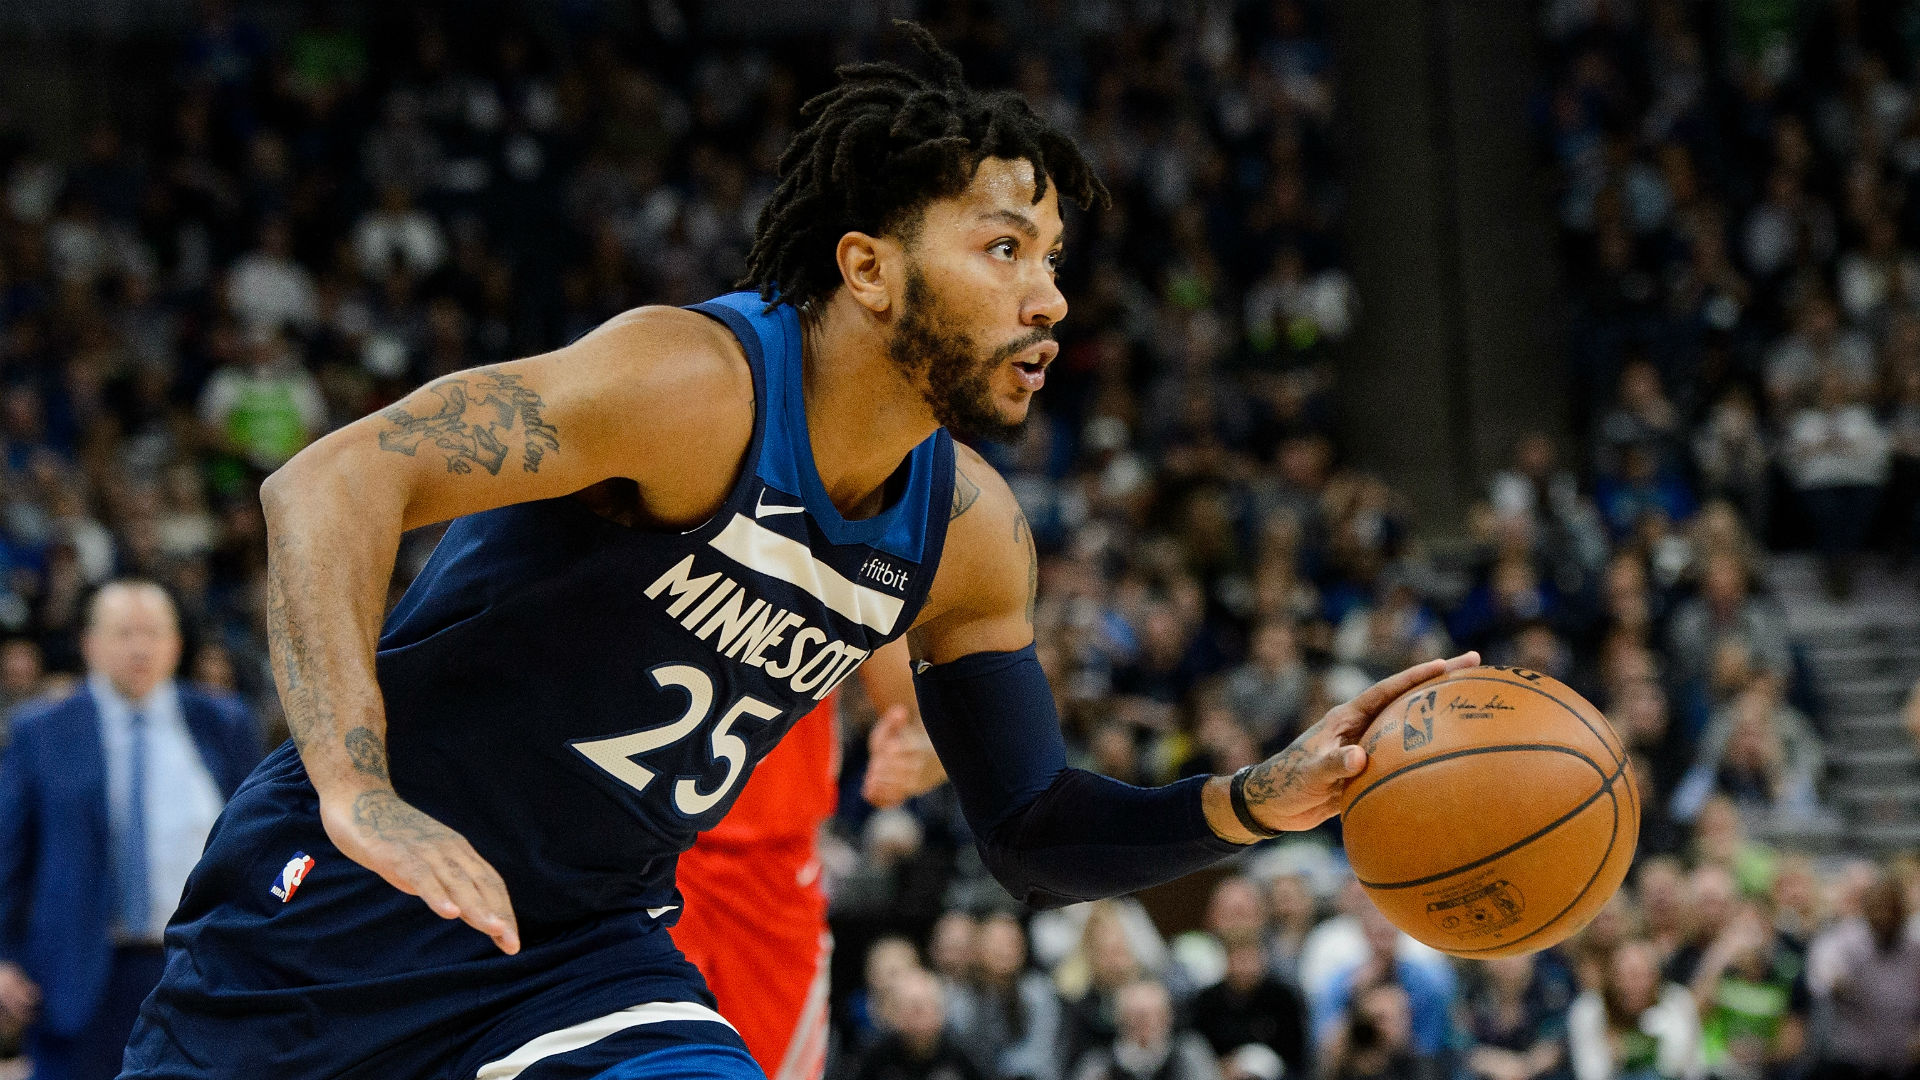 948d4525c96 NBA free agency rumors  Derrick Rose signs 1-year deal with Timberwolves